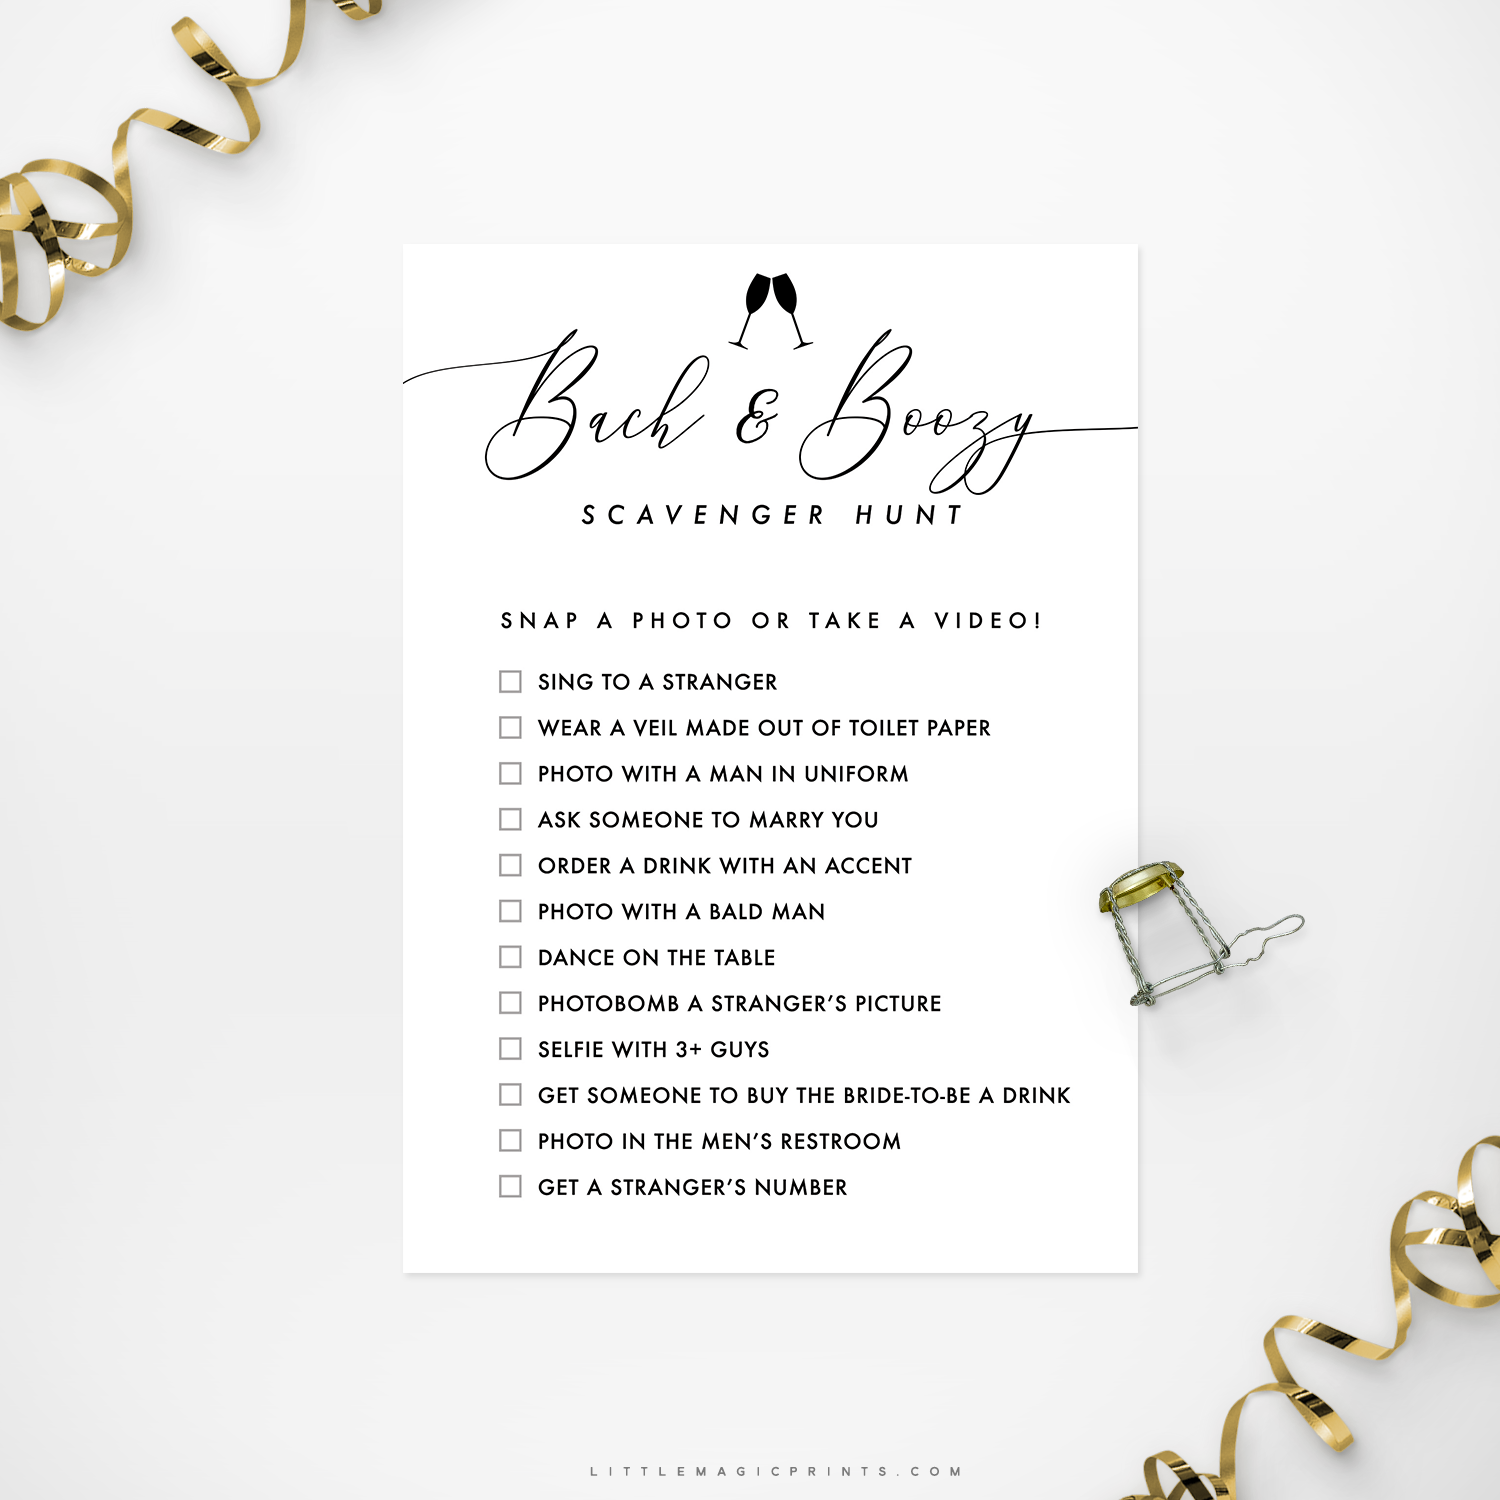 picture about Printable Bachelorette Scavenger Hunt known as Printable Bach Boozy Bachelorette Scavenger Hunt Video game